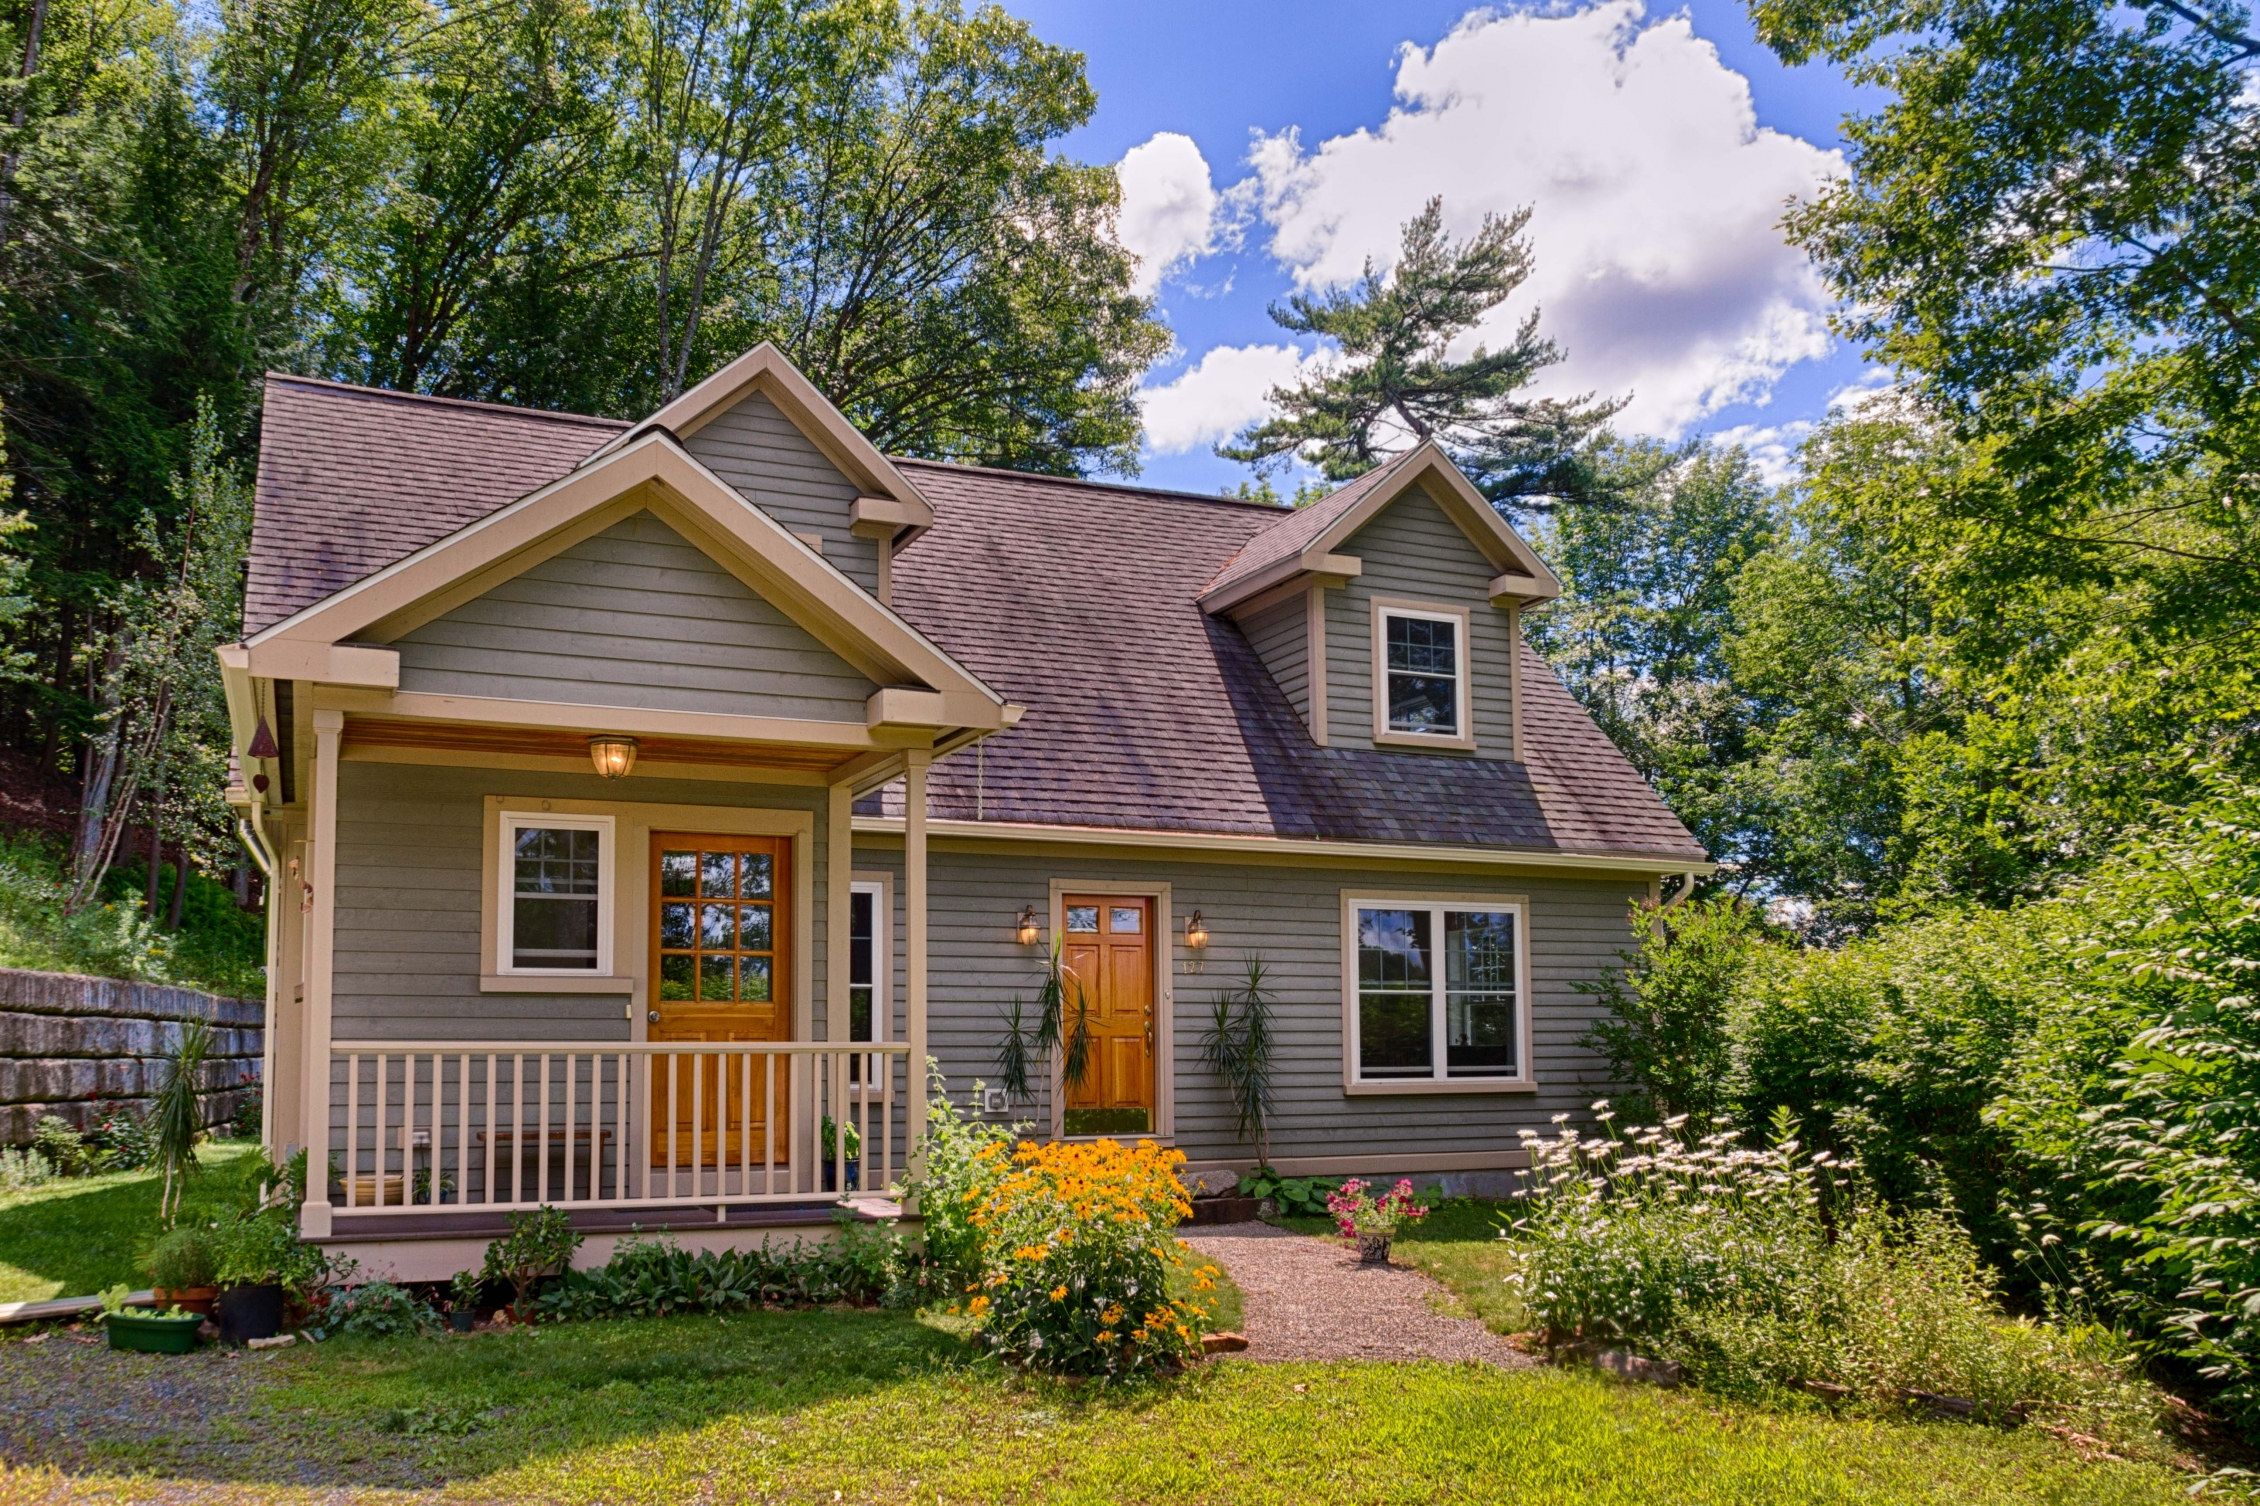 Single Family Home for Sale at 127 Lyme Rd, Hanover Hanover, New Hampshire, 03755 United States